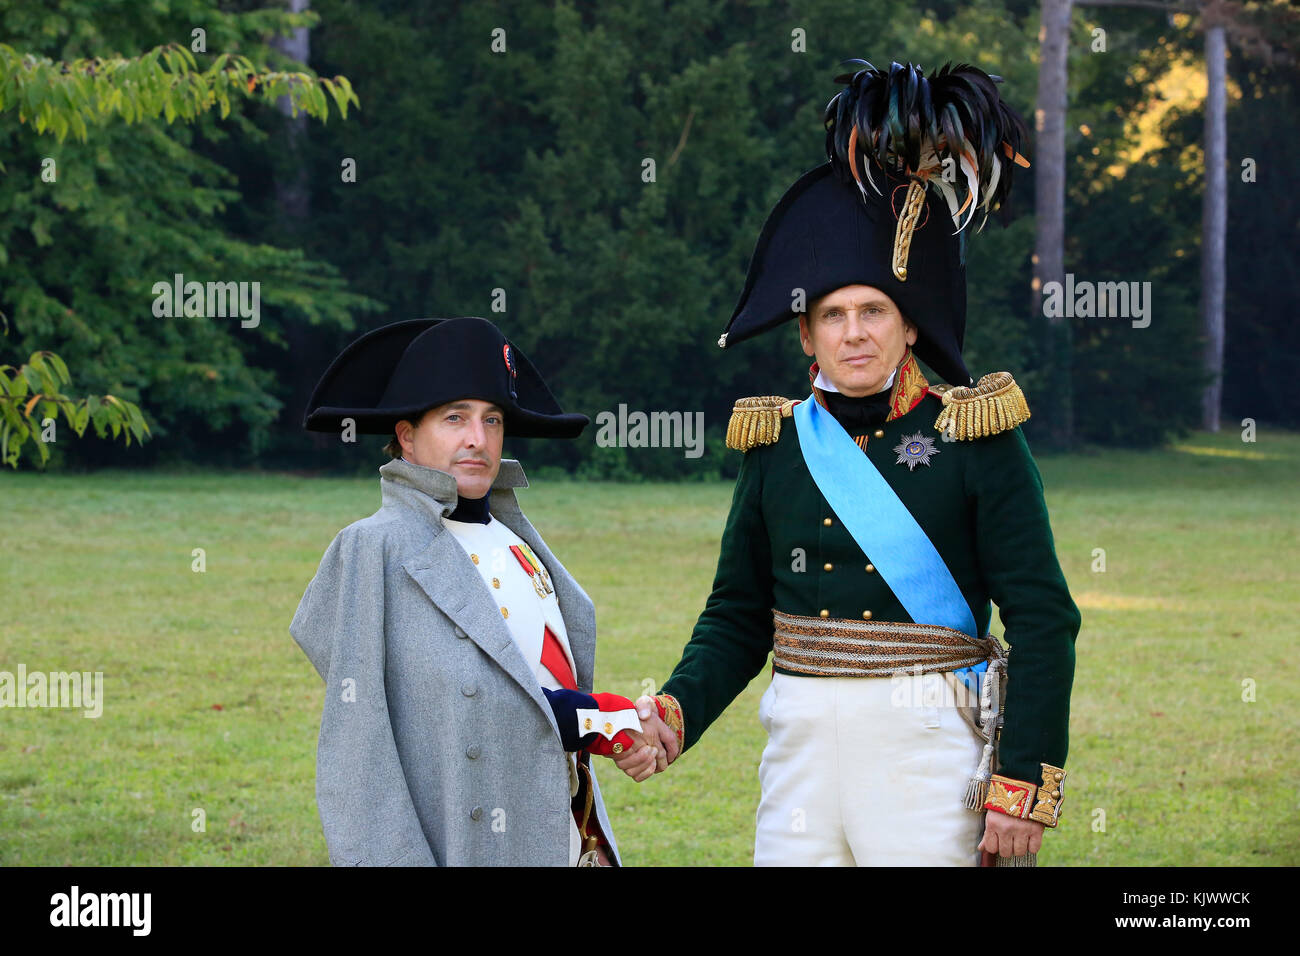 napoleon i emperor of the french essay Napoleon: hero persuasive essay or any similar topic only for you on december 2, 1804, first consul bonaparte became napoleon i, emperor of the french.